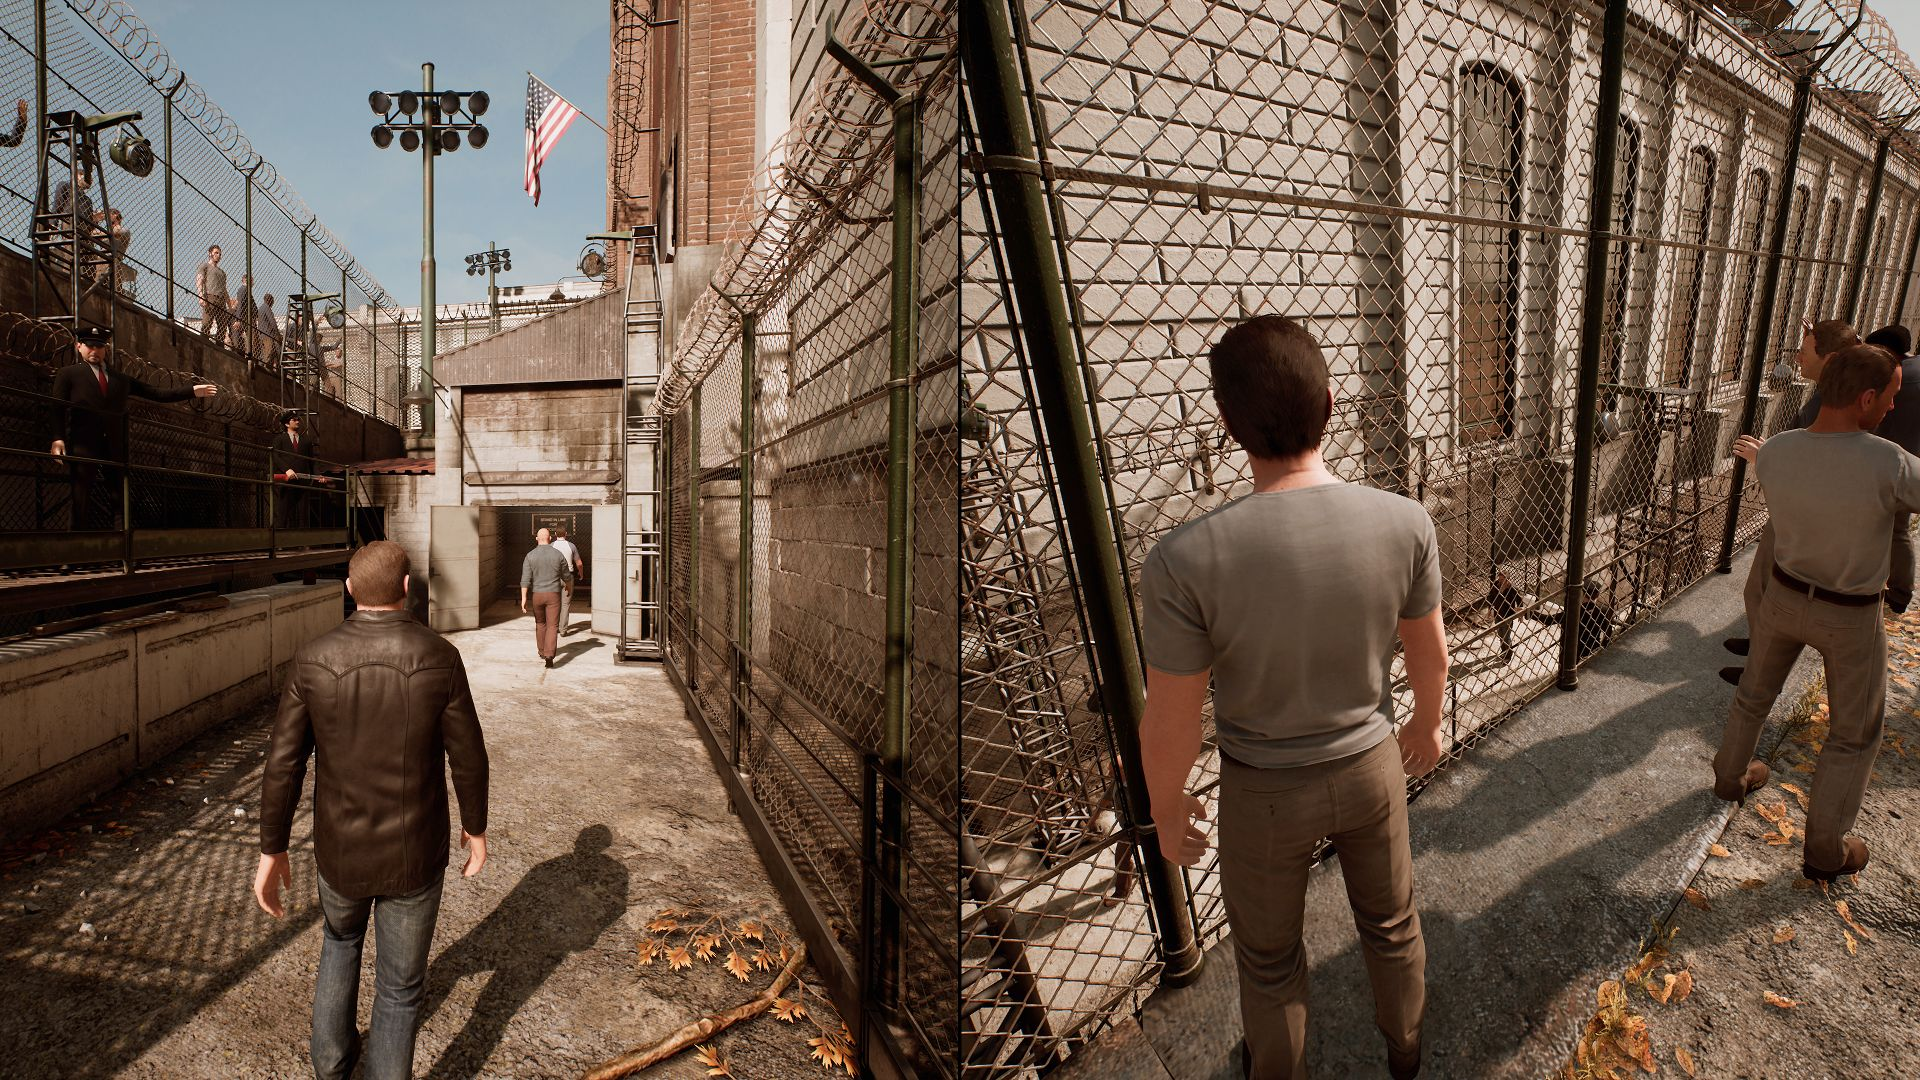 A Way Out leaps onto PC and consoles today